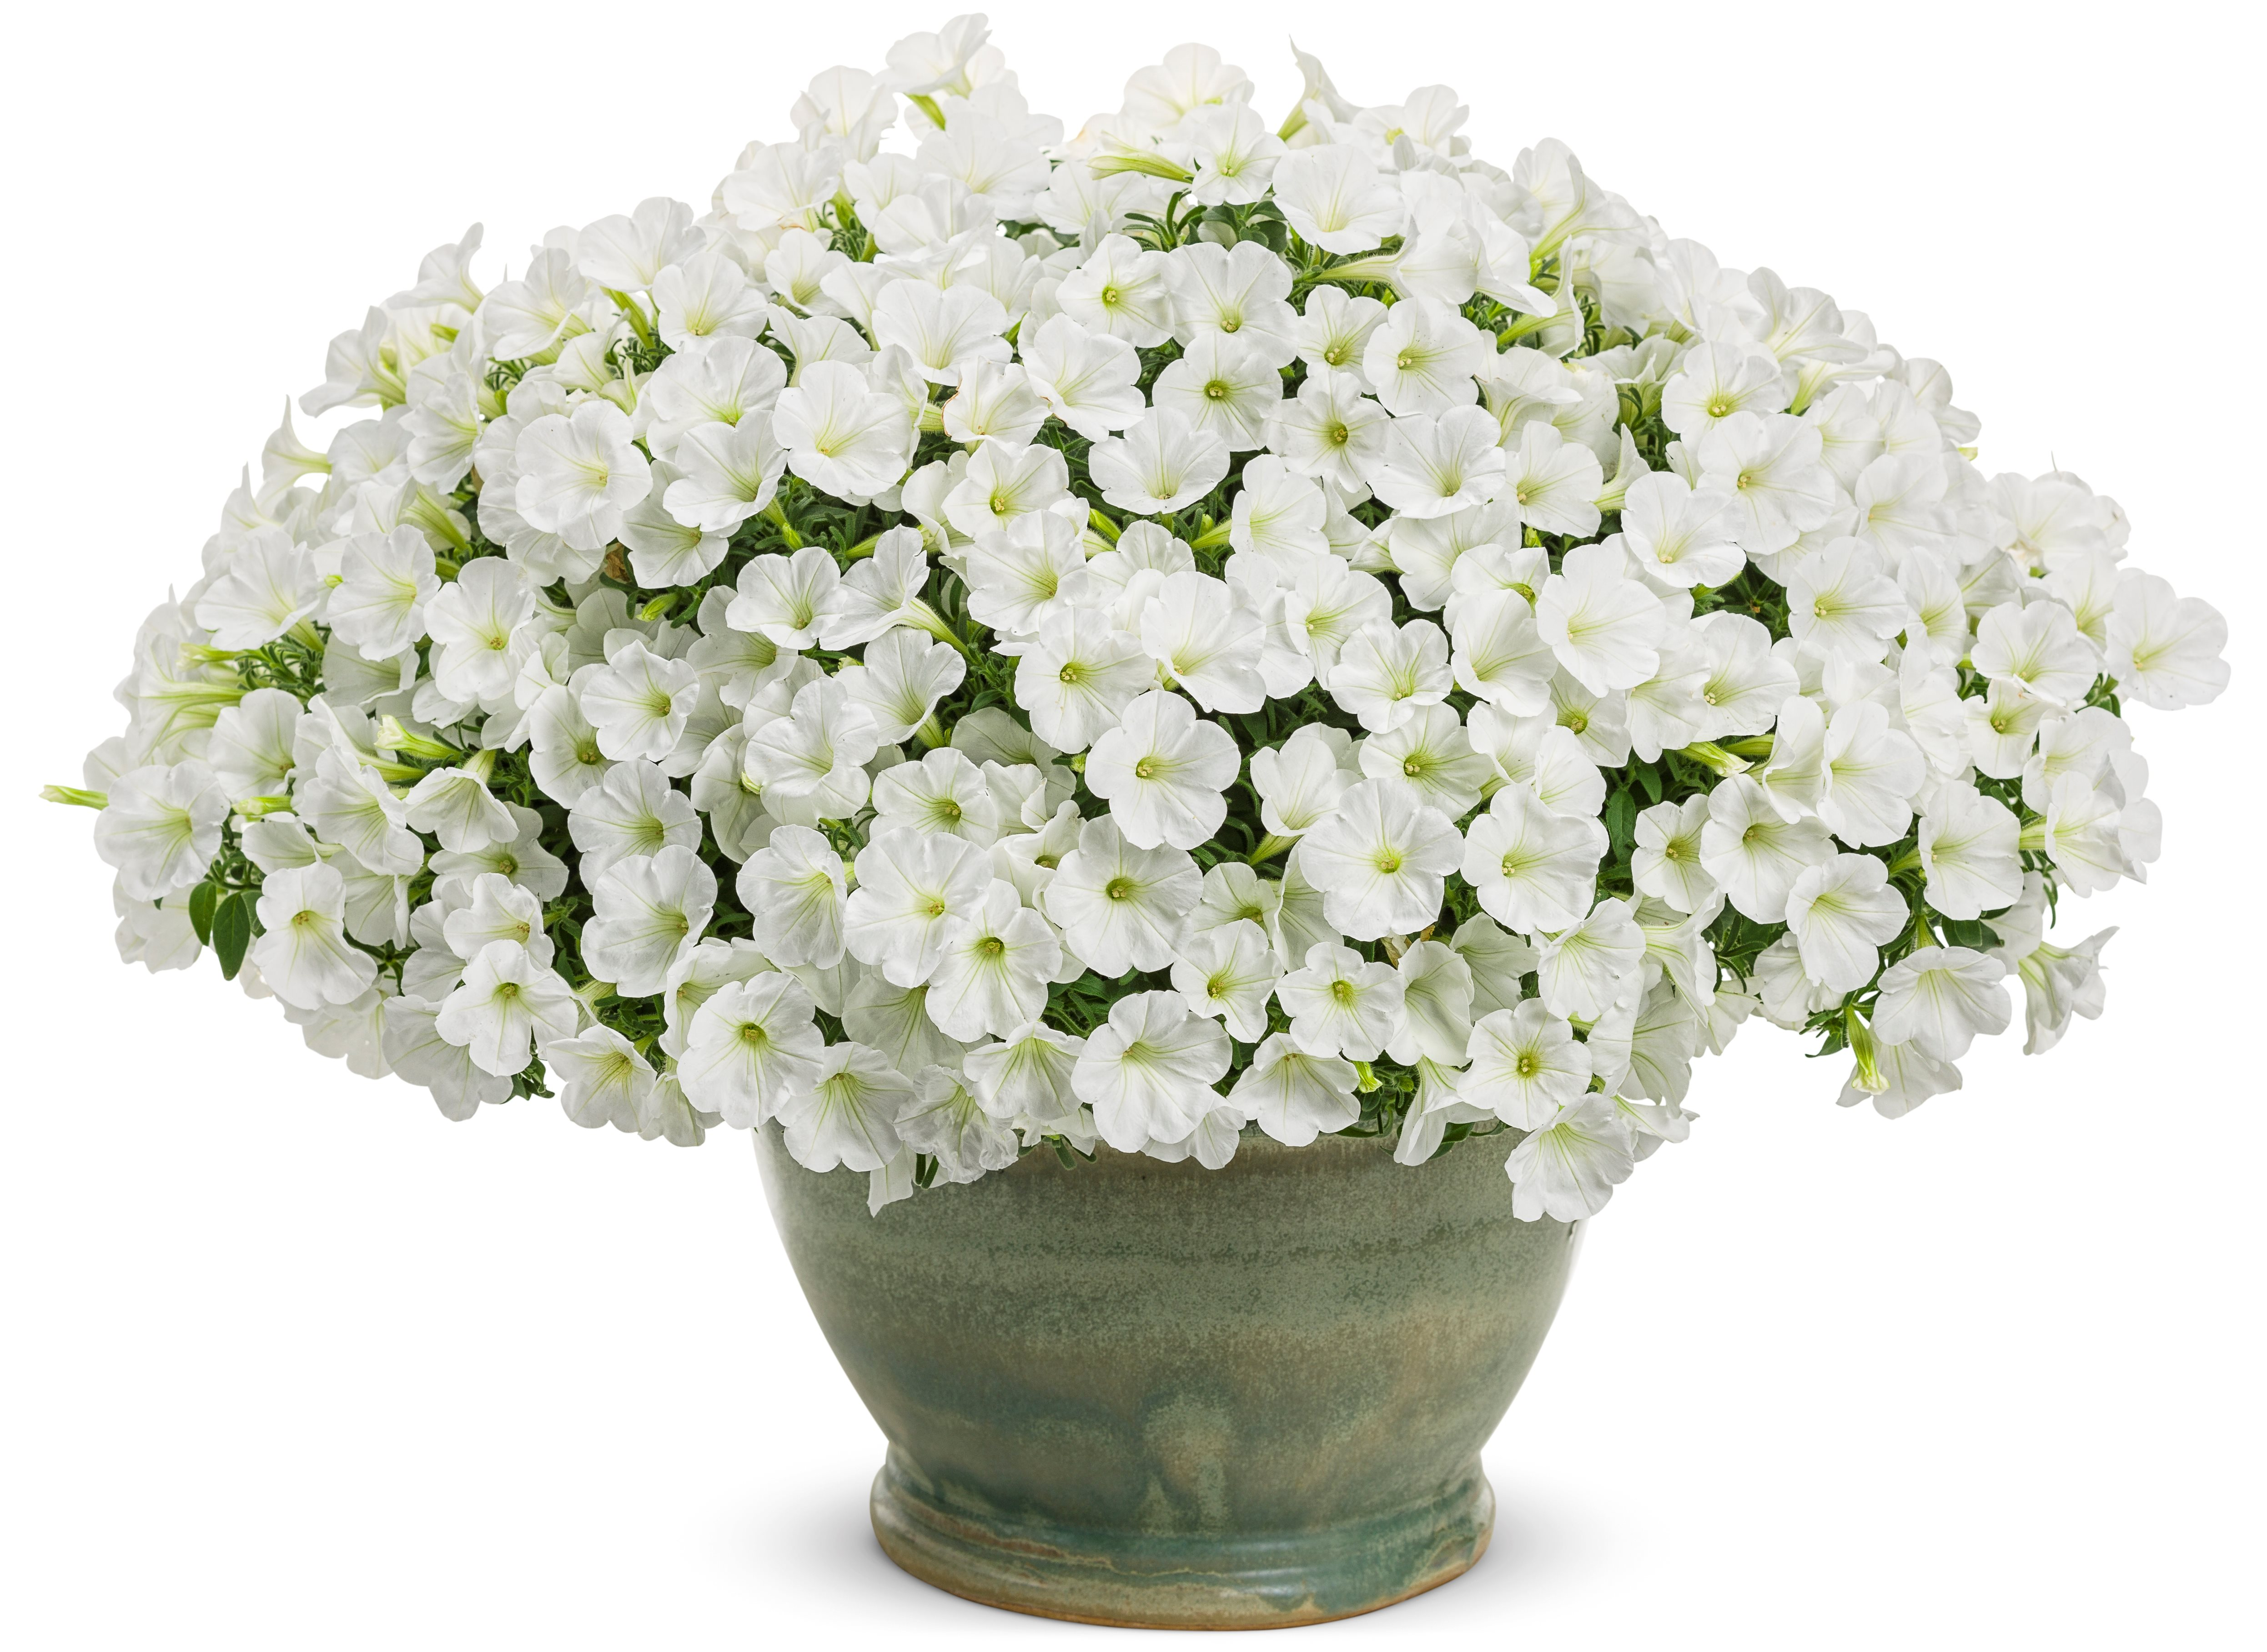 /Images/johnsonnursery/product-images/supertunia_white_charm_mono_17rgblls5.jpg